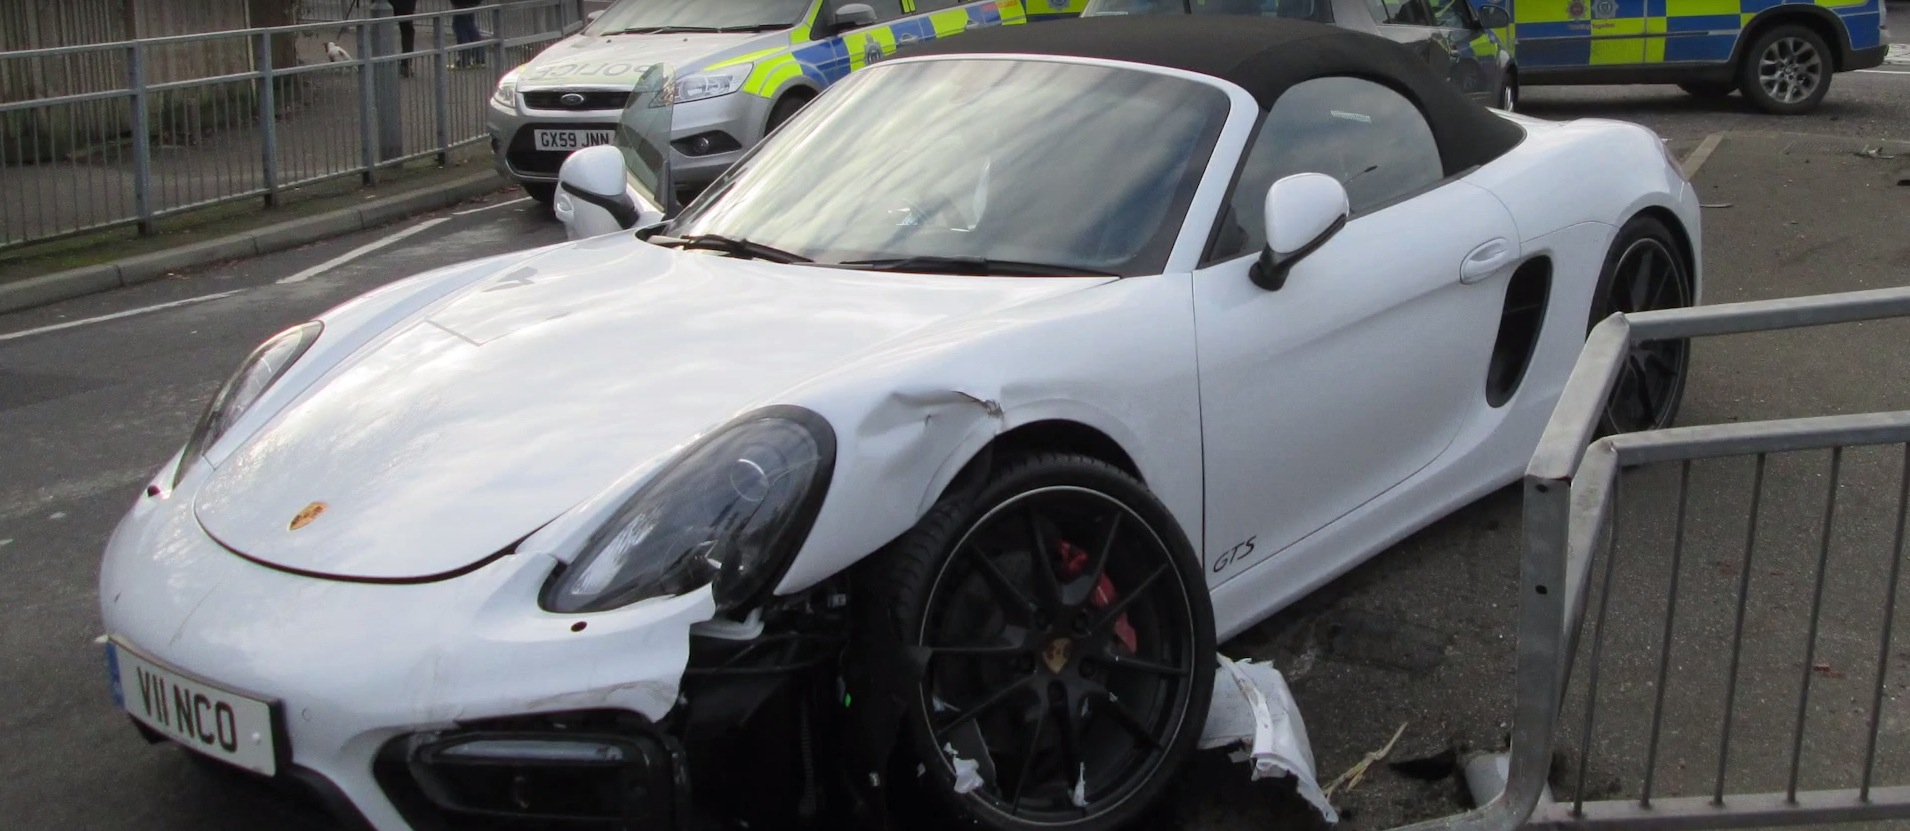 brand new porsche boxster gts gets stolen and totaled police chase footage is painful. Black Bedroom Furniture Sets. Home Design Ideas